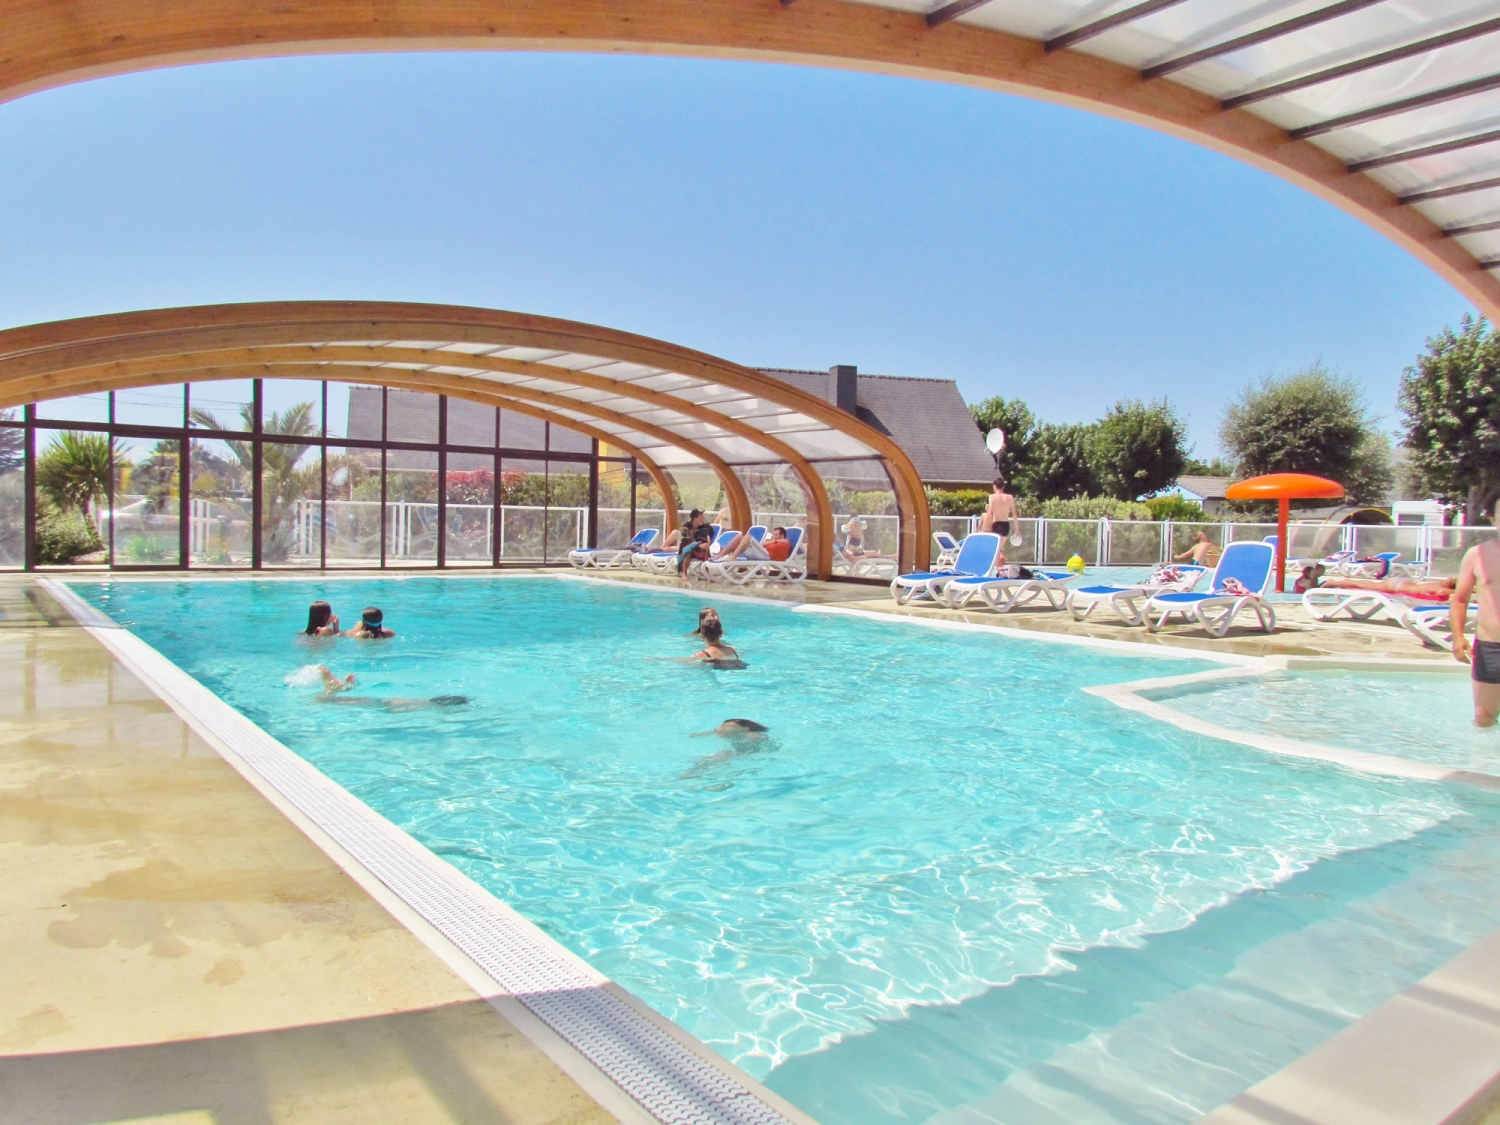 Camping piscine couverte herault camping la tranche sur for Camping erdeven avec piscine couverte